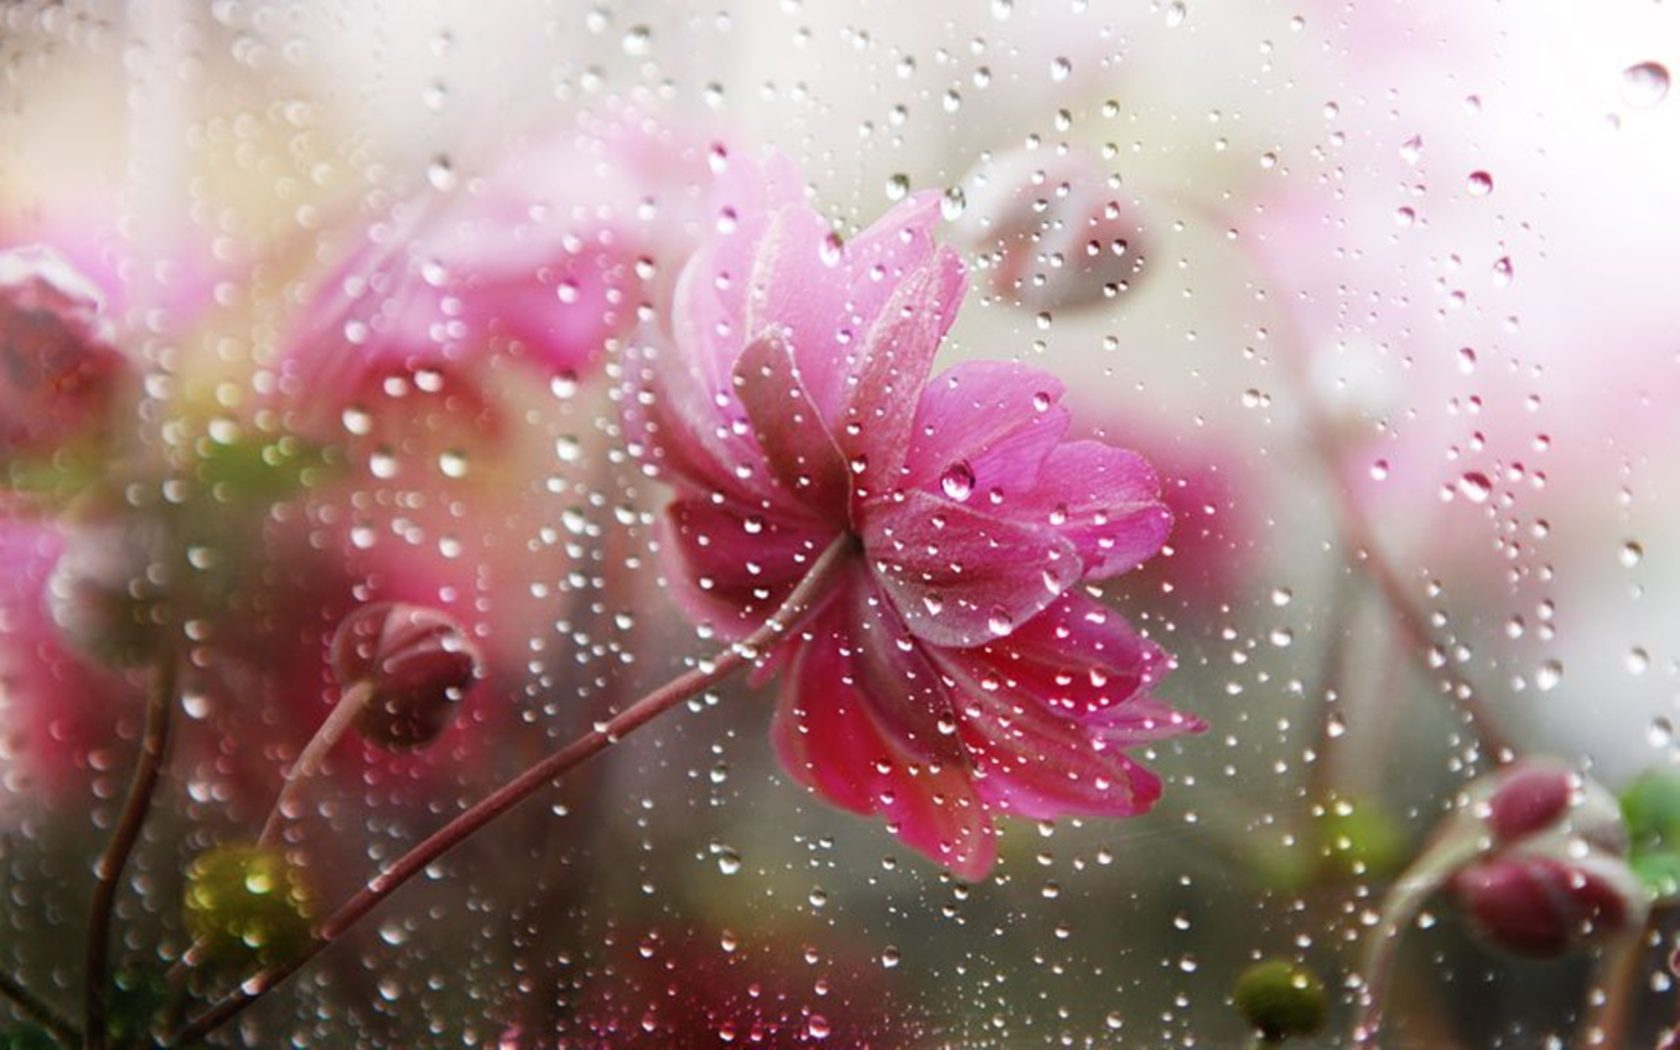 Free Animated Falling Leaves Wallpaper Falling Rain In Flower Flowers Under The Rain